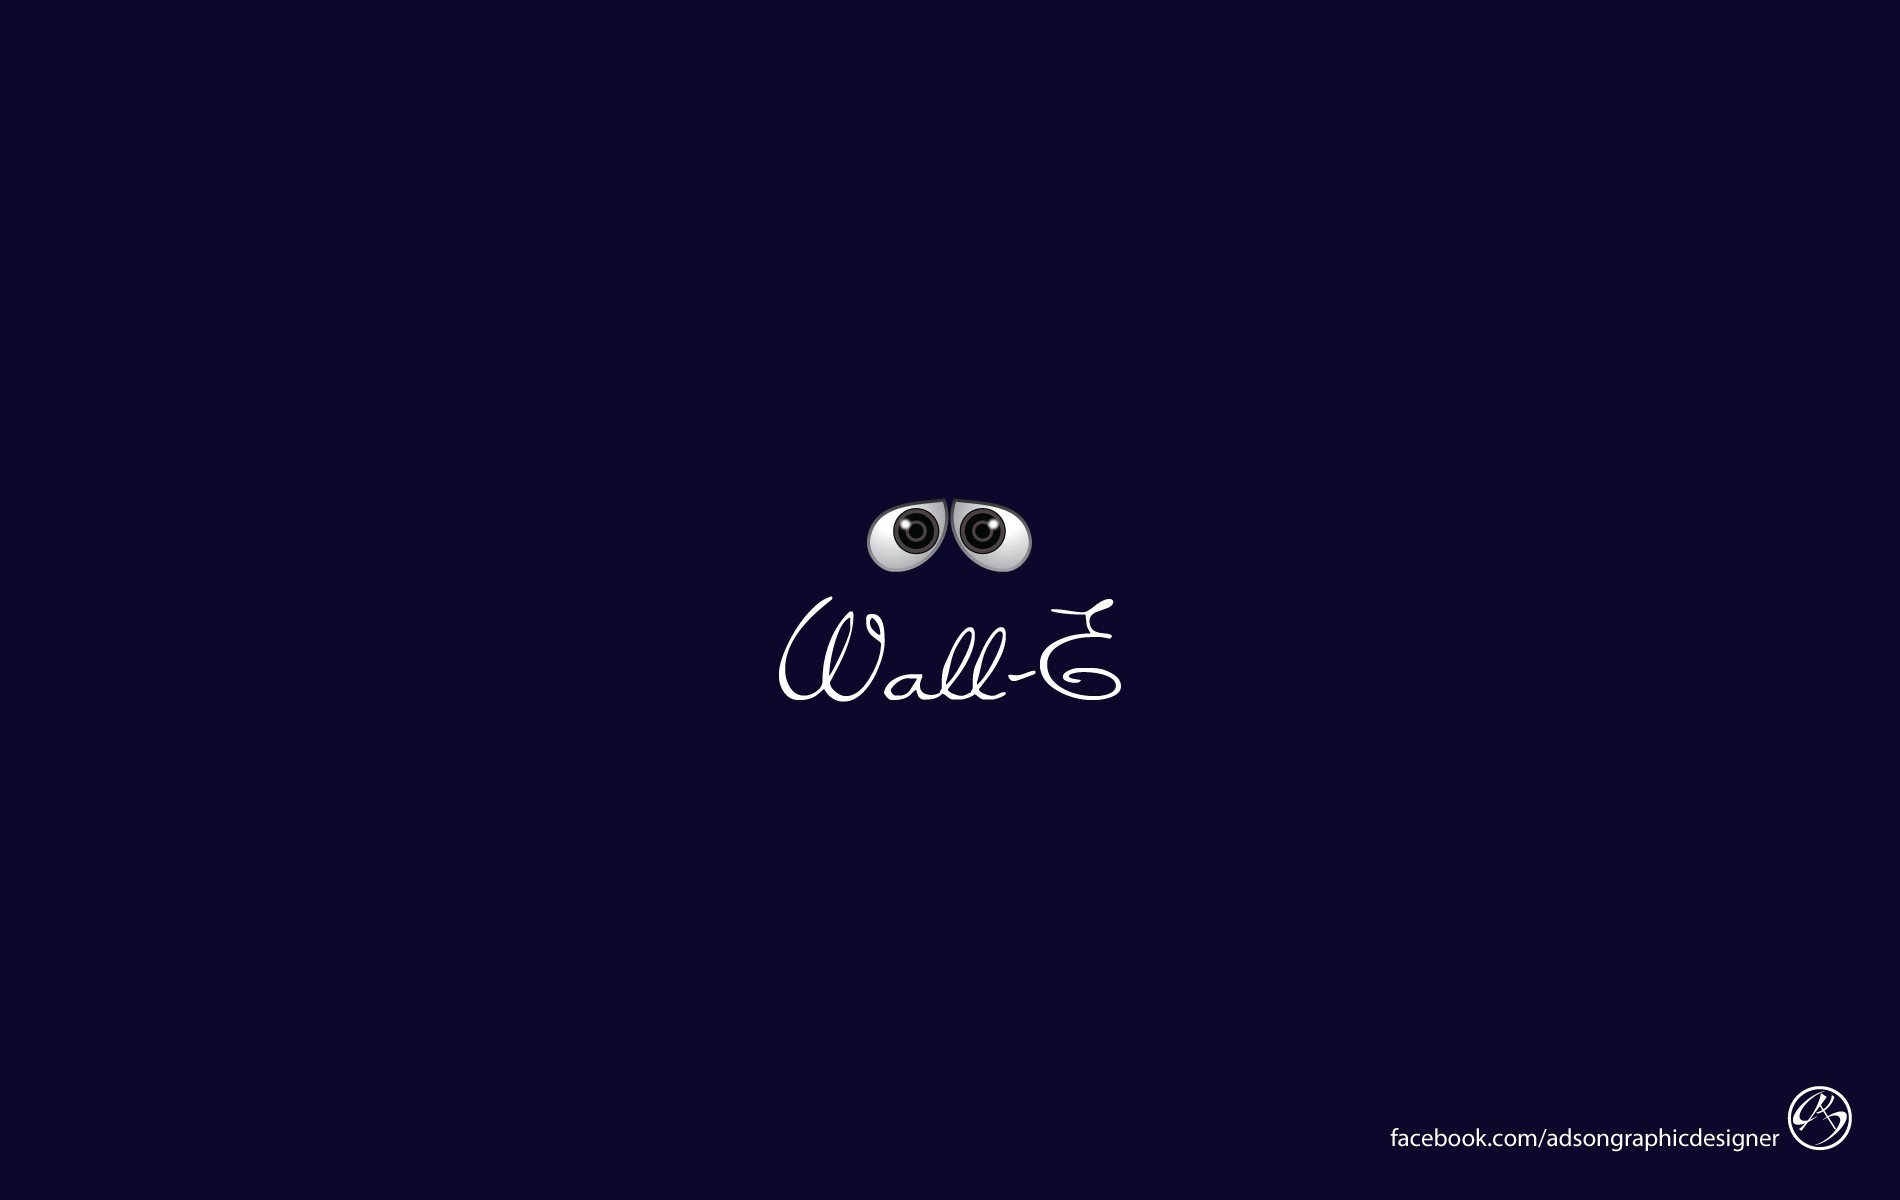 pixar minimalistic wall-e animation wallpaper | allwallpaper.in